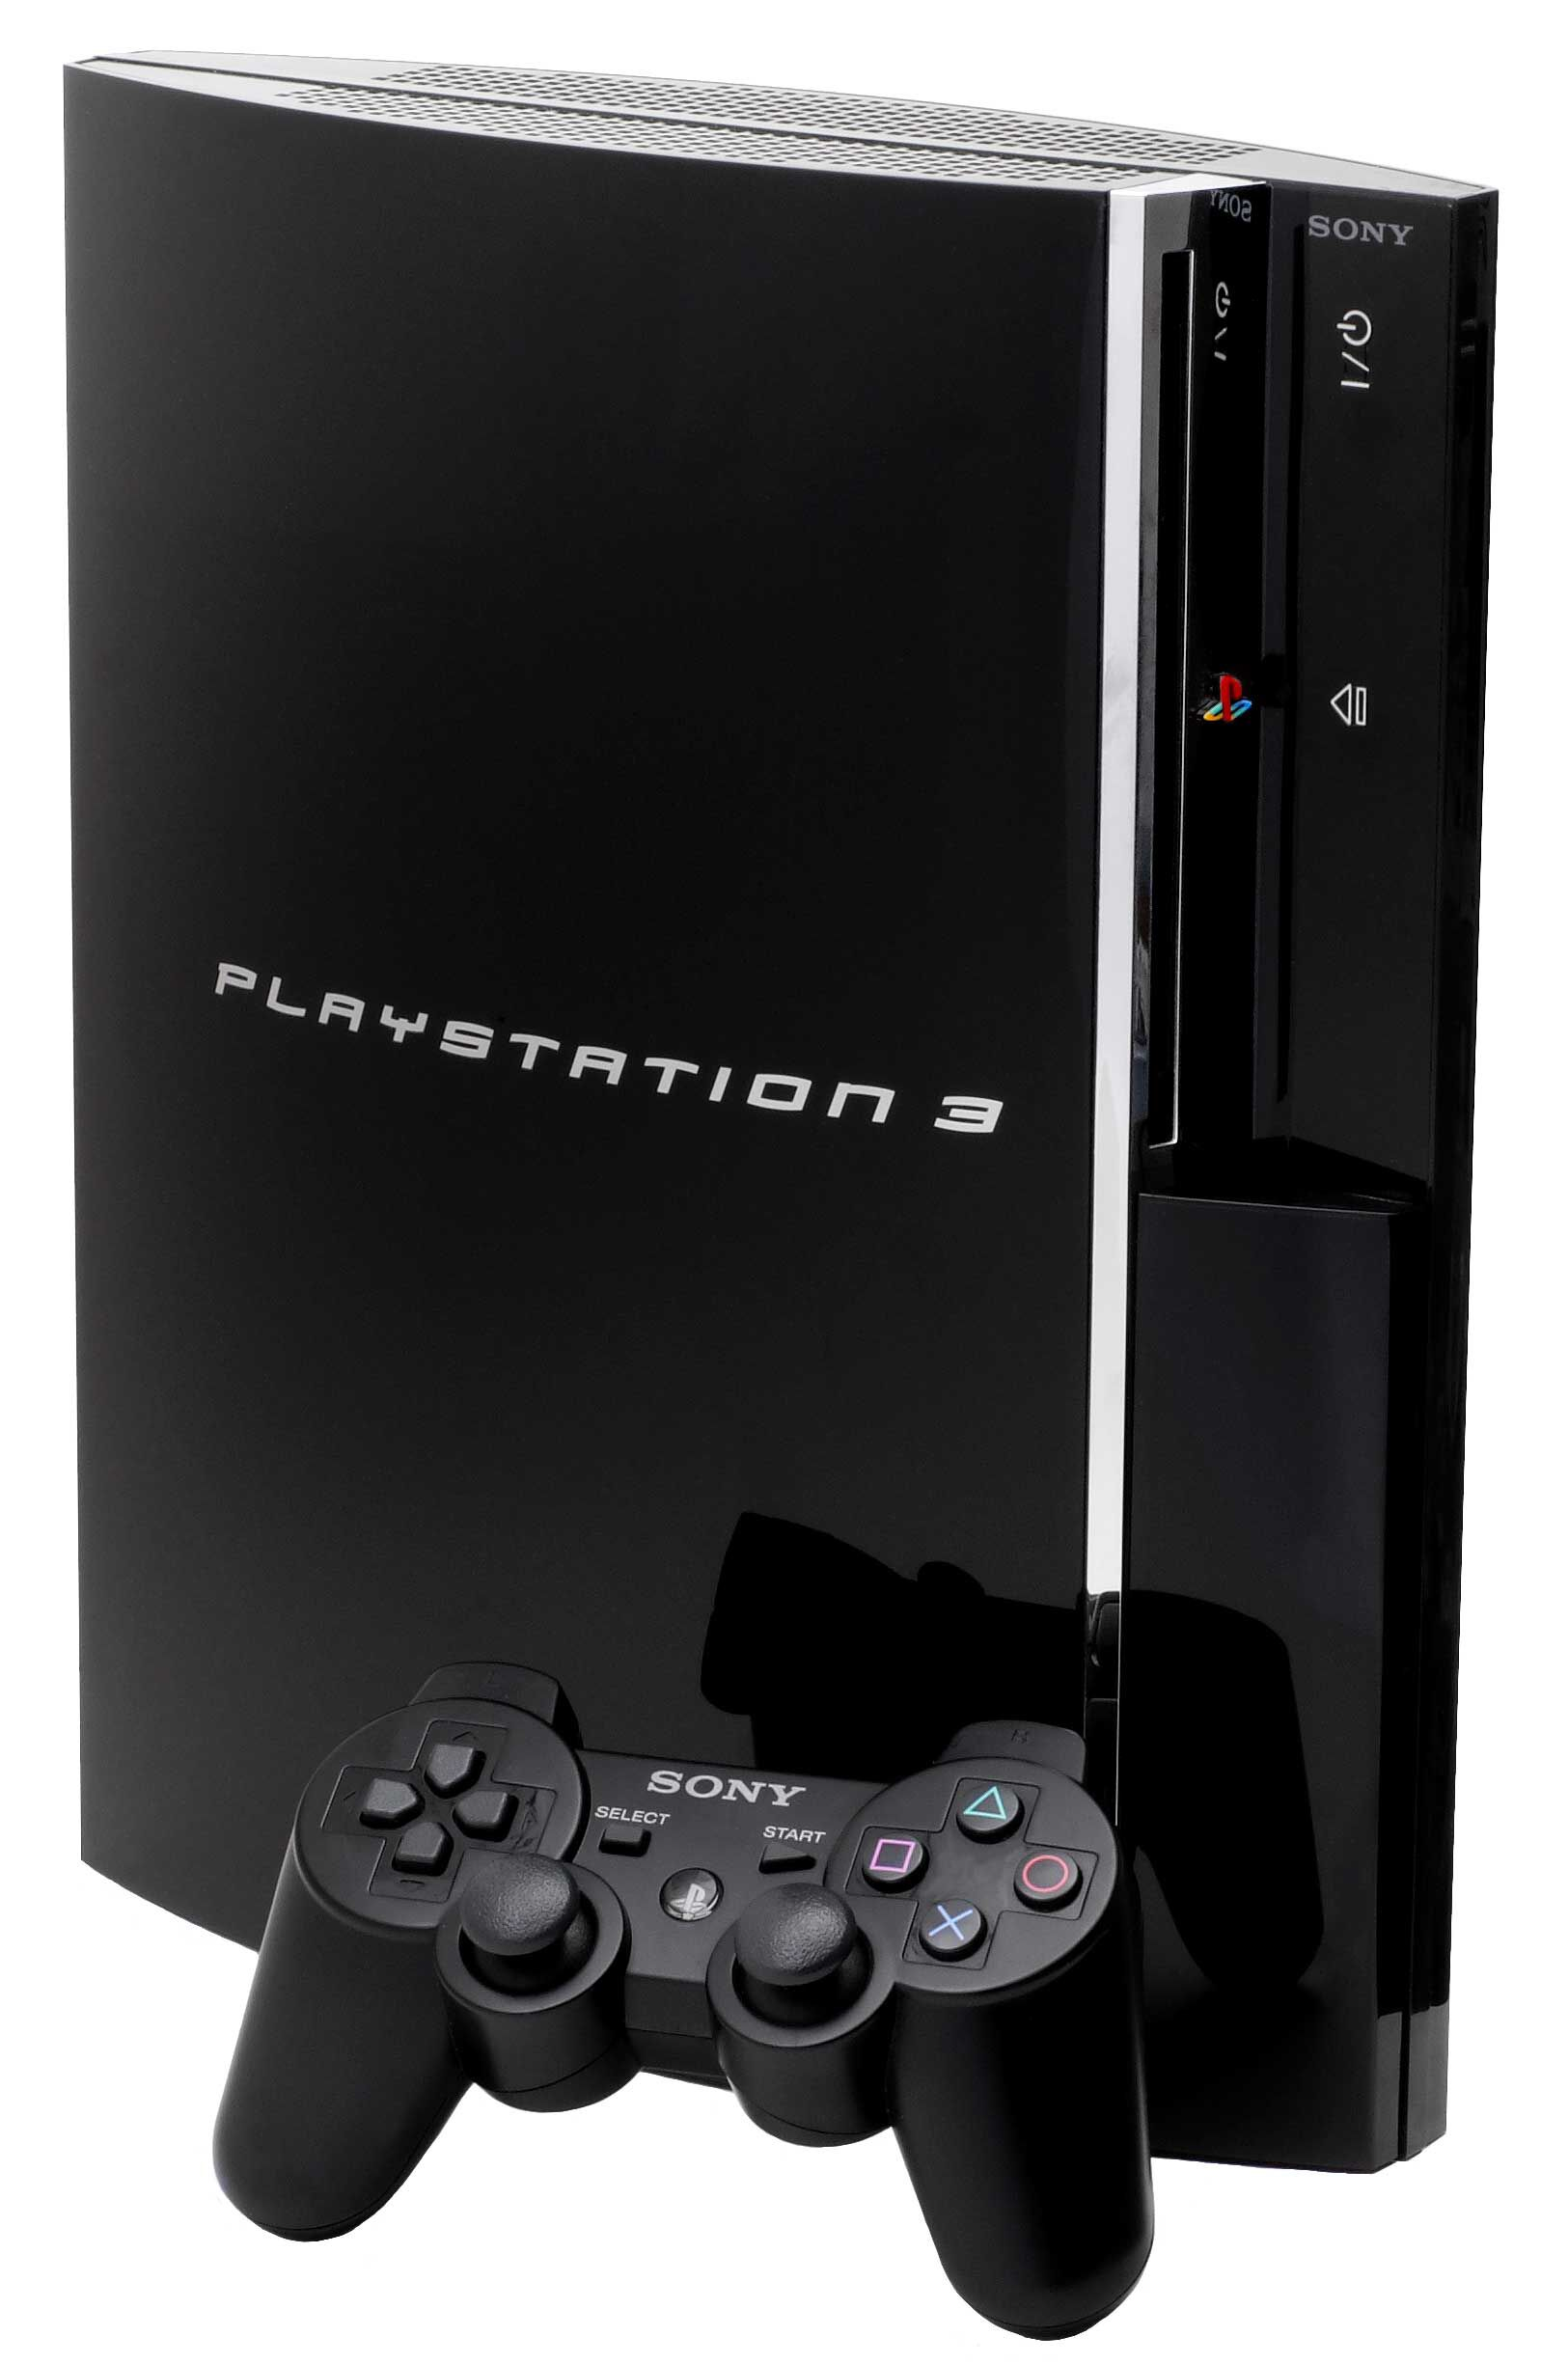 ps3 fat 60 gb